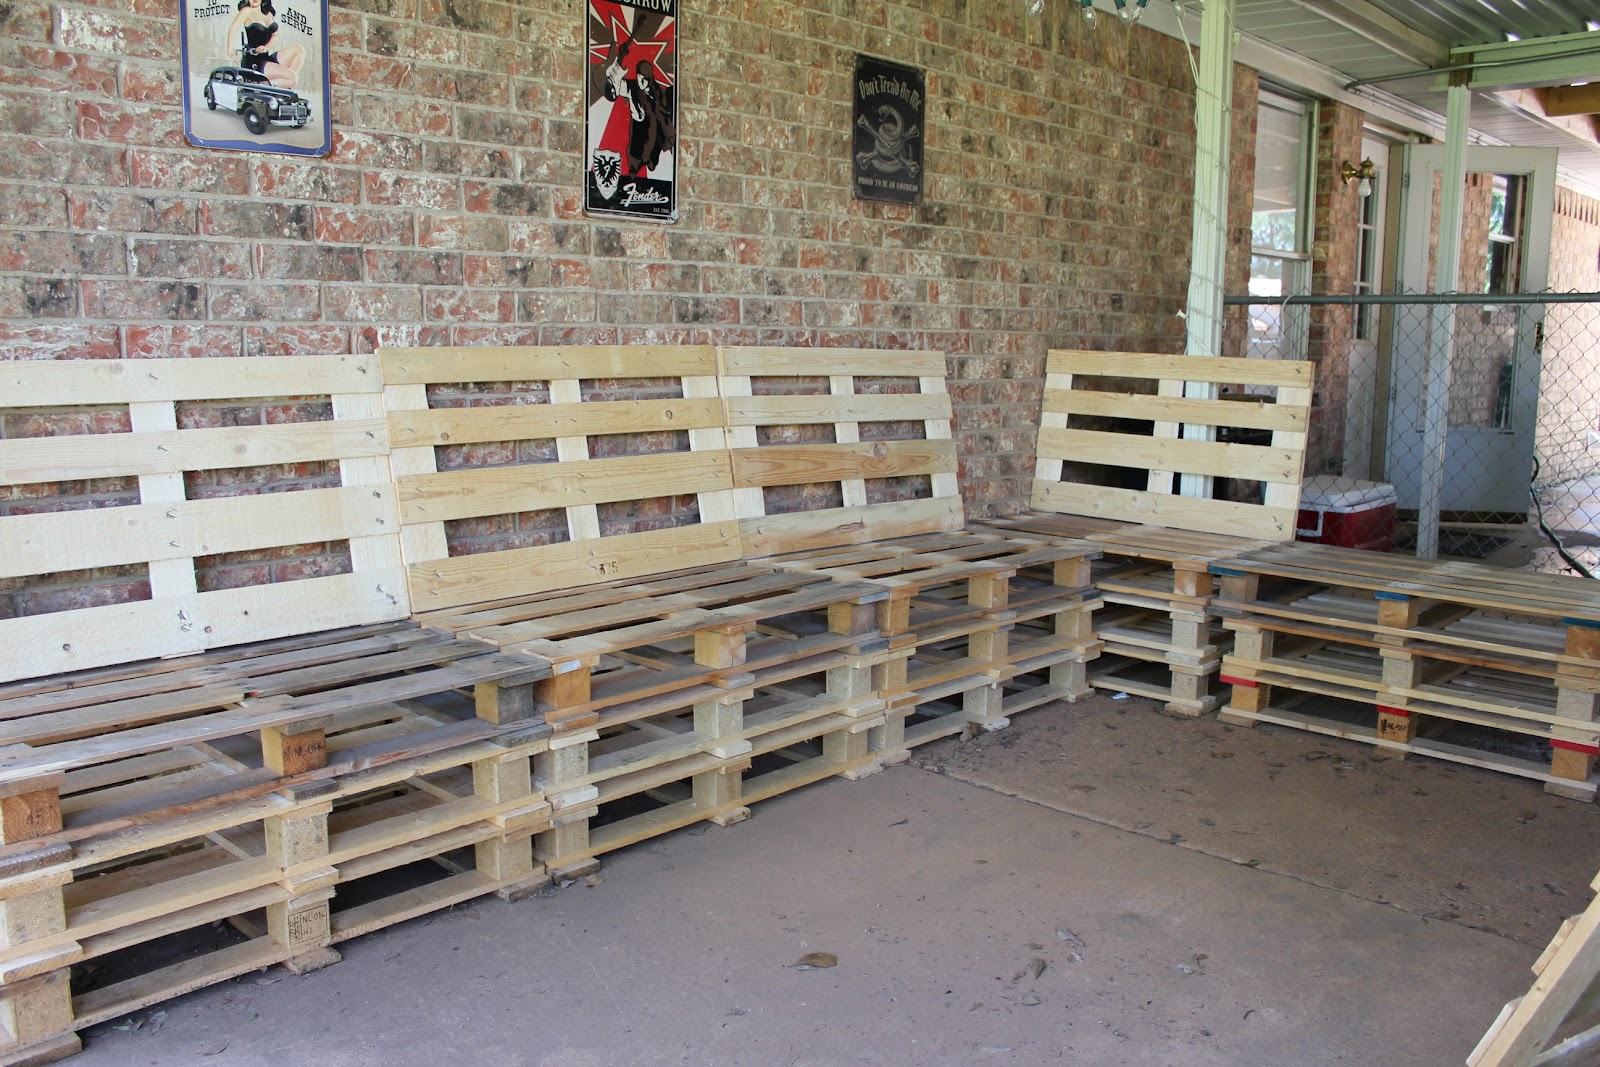 diy outdoor patio furniture from pallets - How To Make Garden Furniture Out Of Pallets